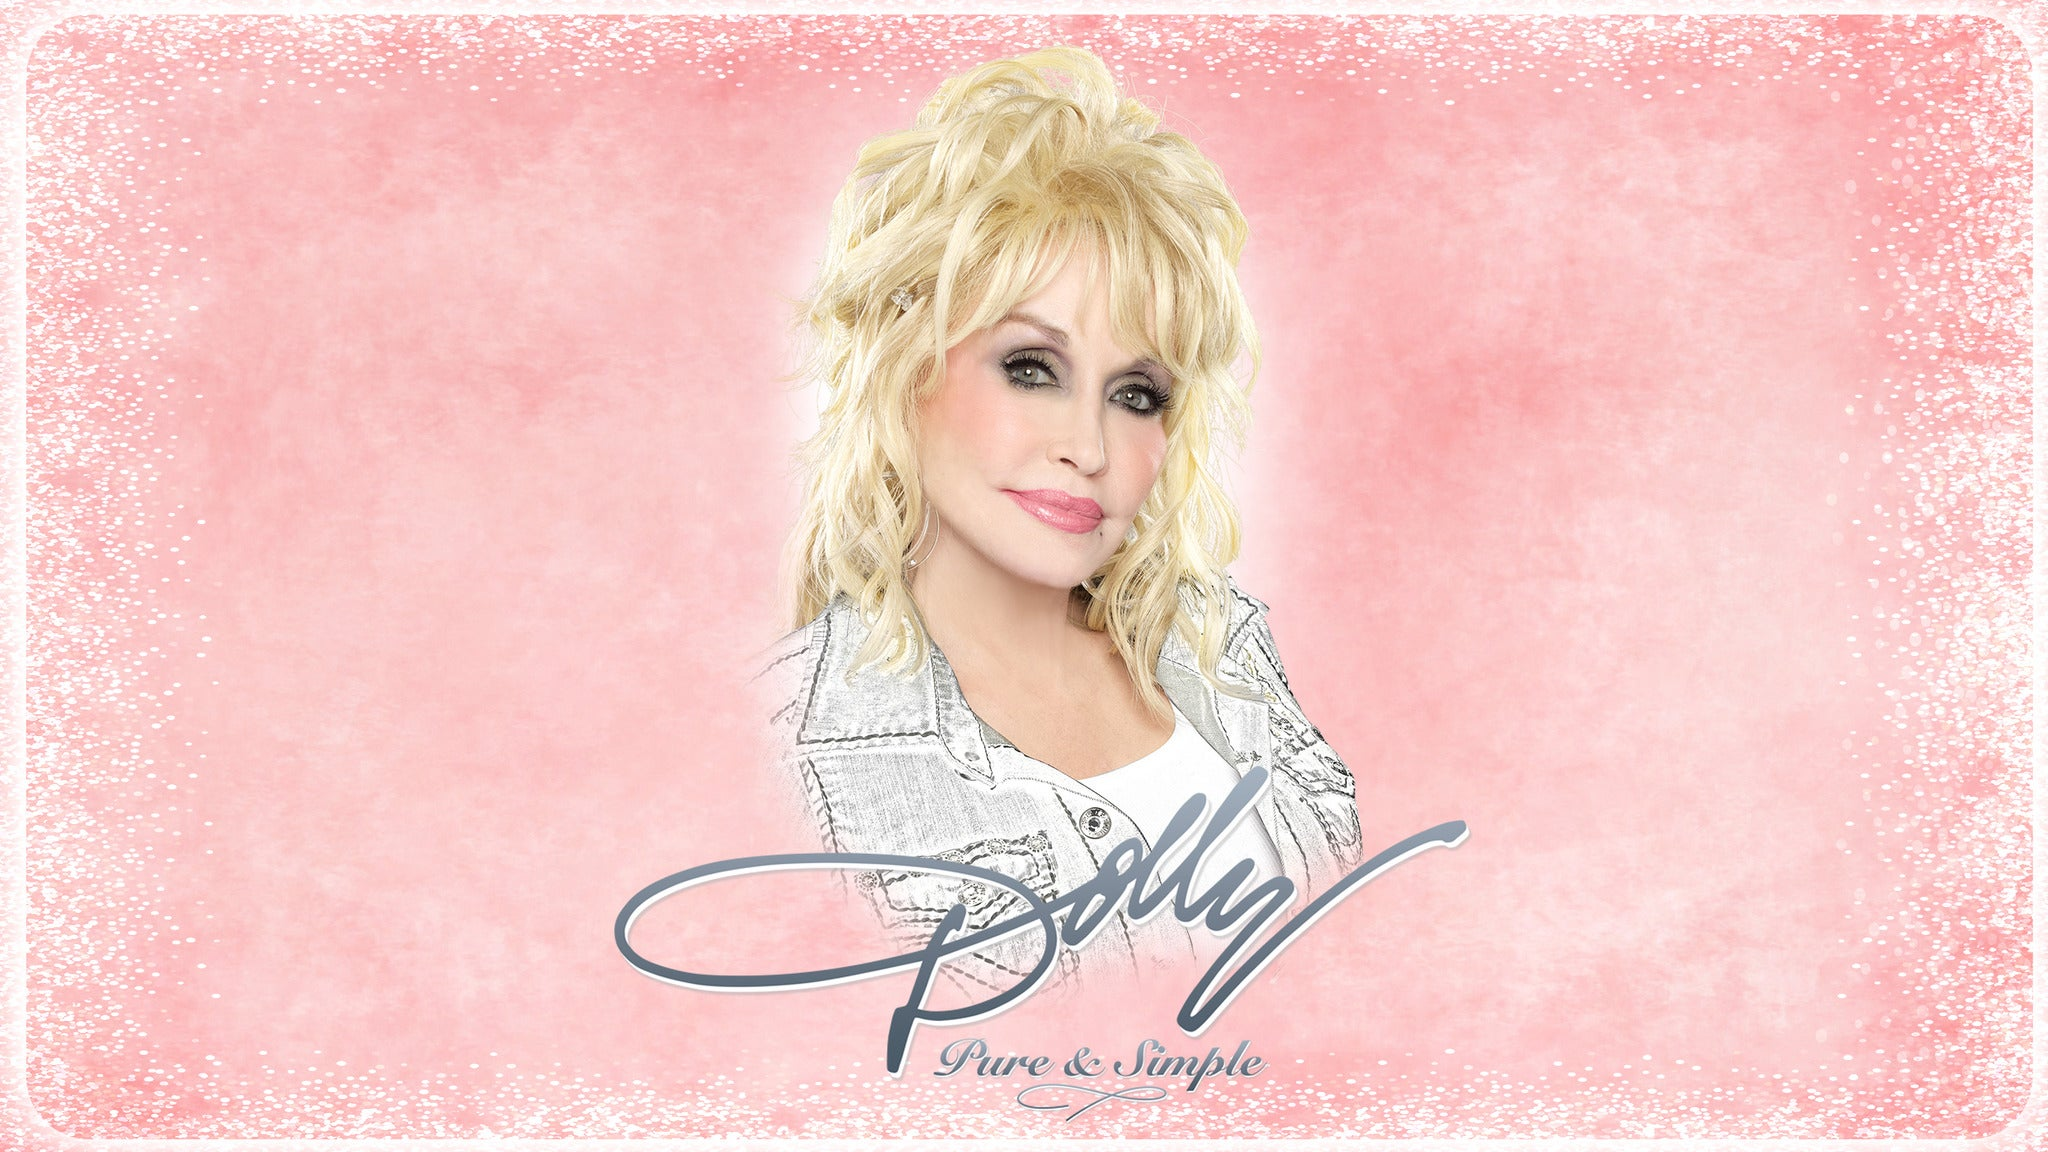 Dolly Parton Pure & Simple Tour at BB&T Center